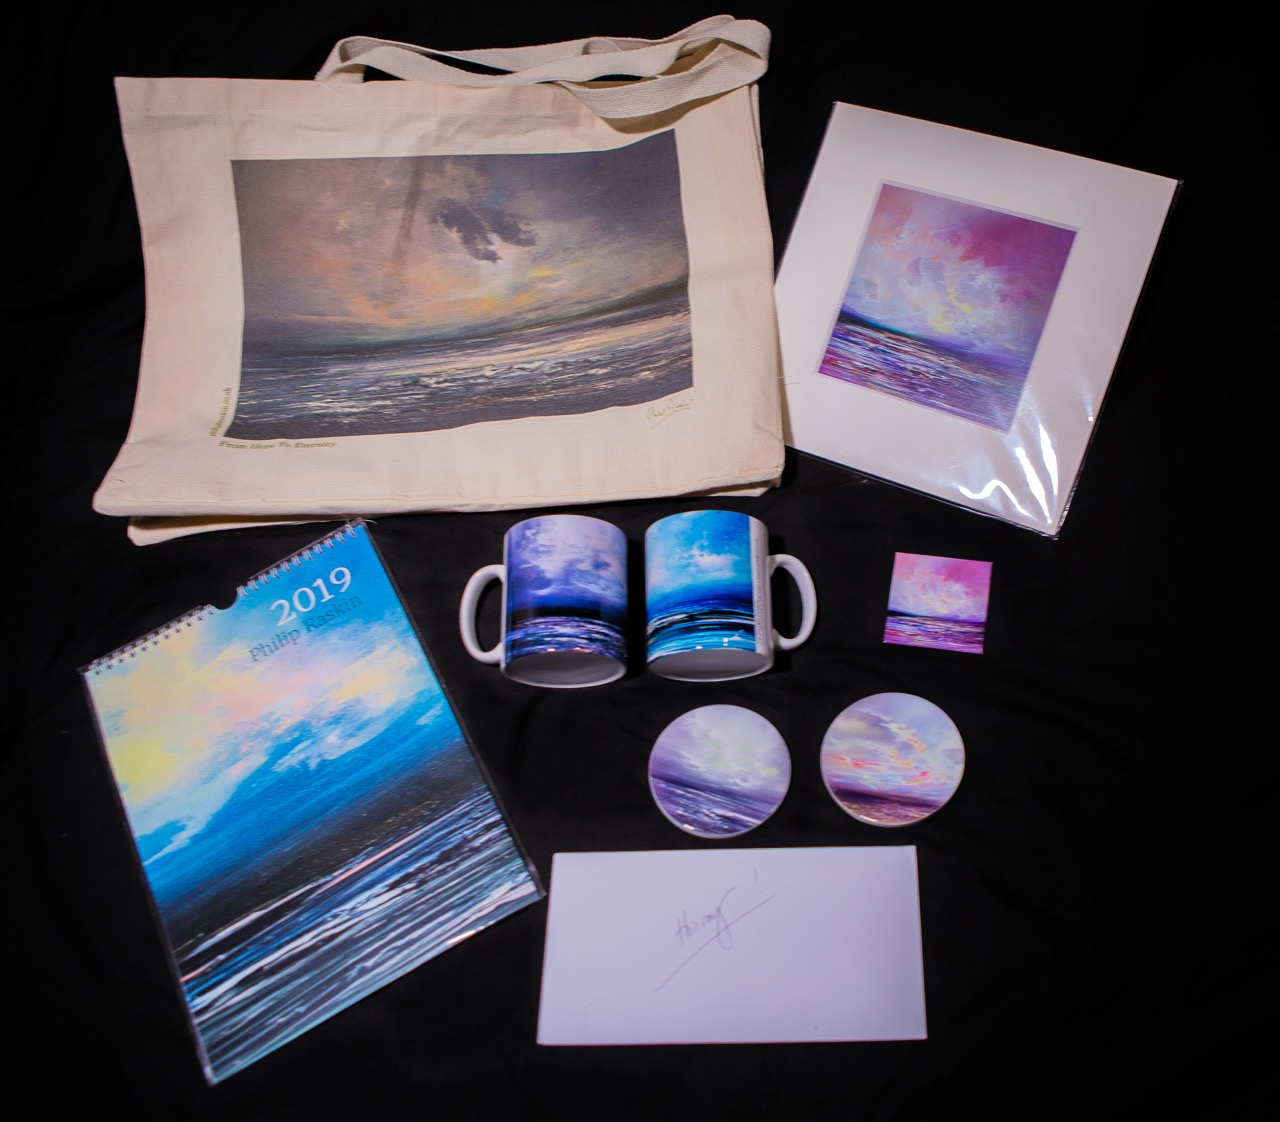 Lot 64 - Philip Raskin Signed Artwork Goodie Bag